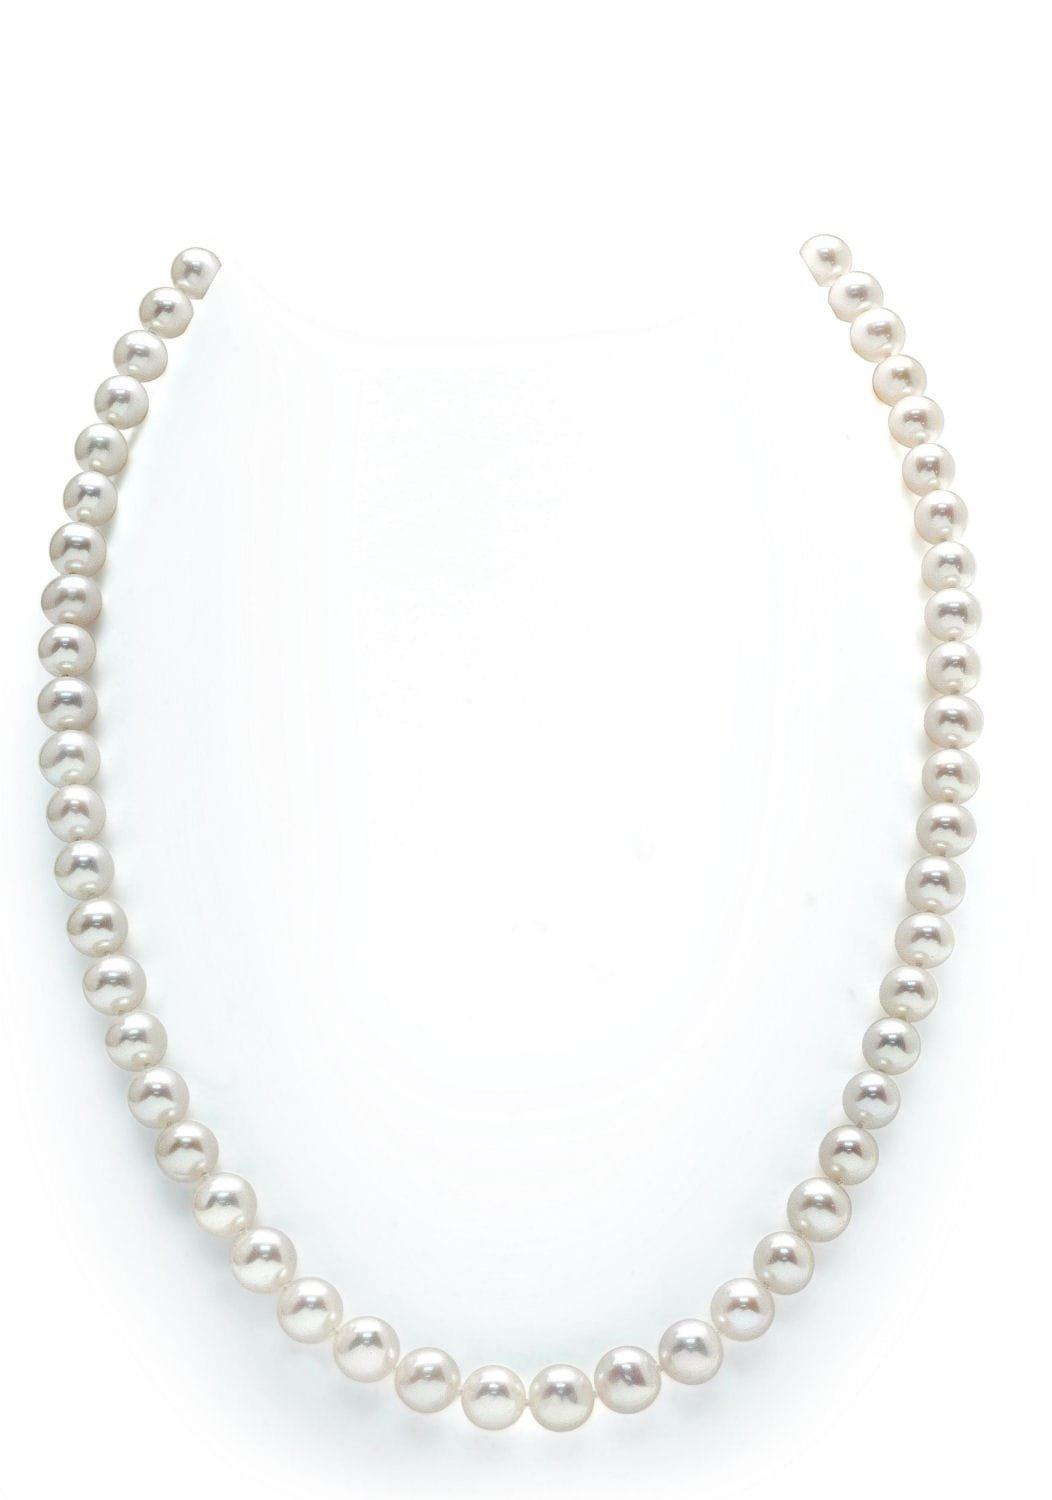 14K Gold White Freshwater Cultured Pearl Necklace - AAAA Quality, 20'' Matinee Length